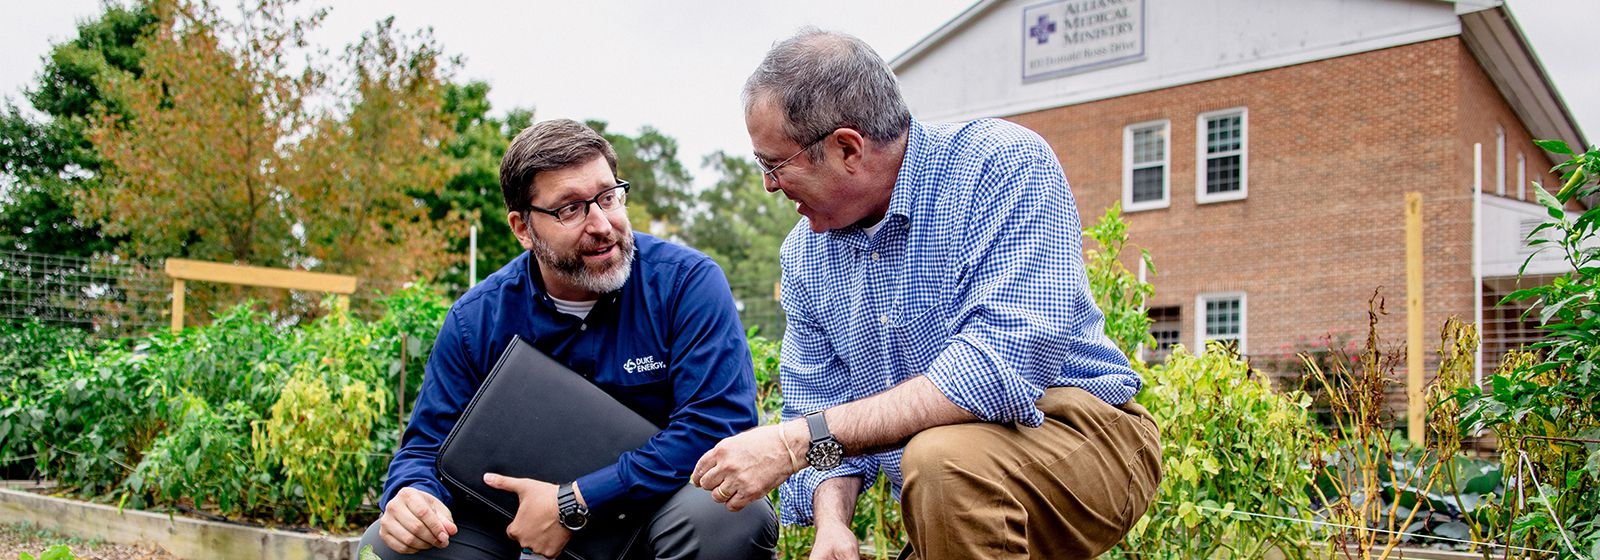 With lower energy bills, this clinic can help more people